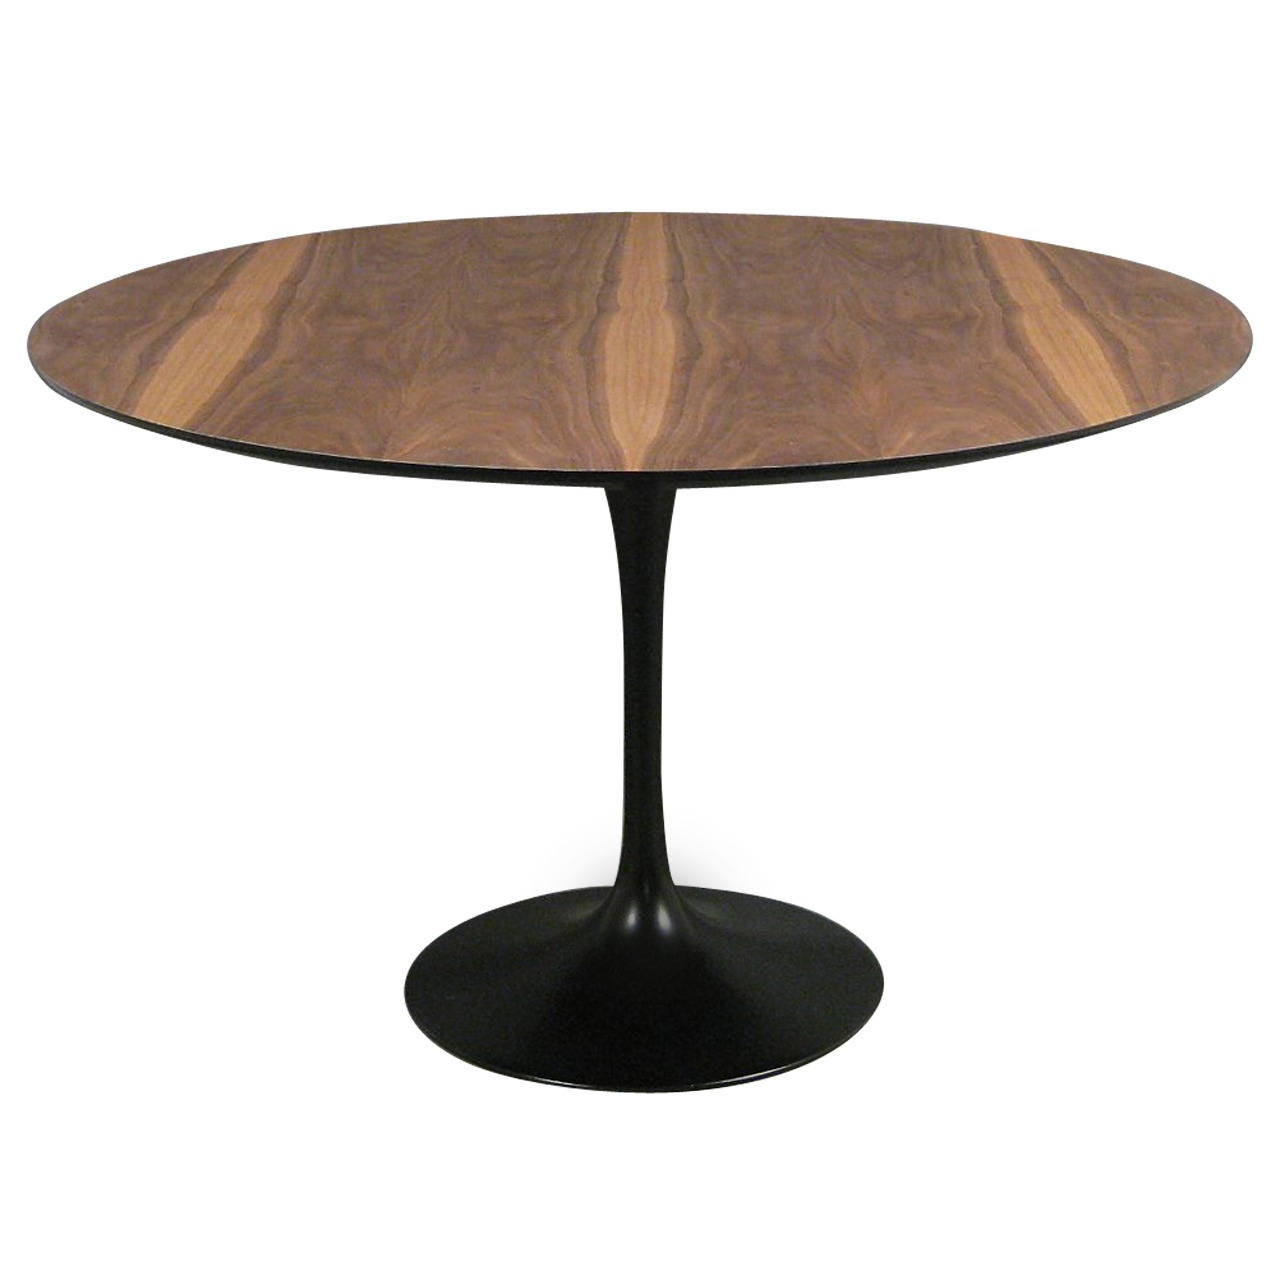 Eero Saarinen quotTulipquot Dining Table by Knoll at 1stdibs : 2254952l from www.1stdibs.com size 1280 x 1280 jpeg 59kB